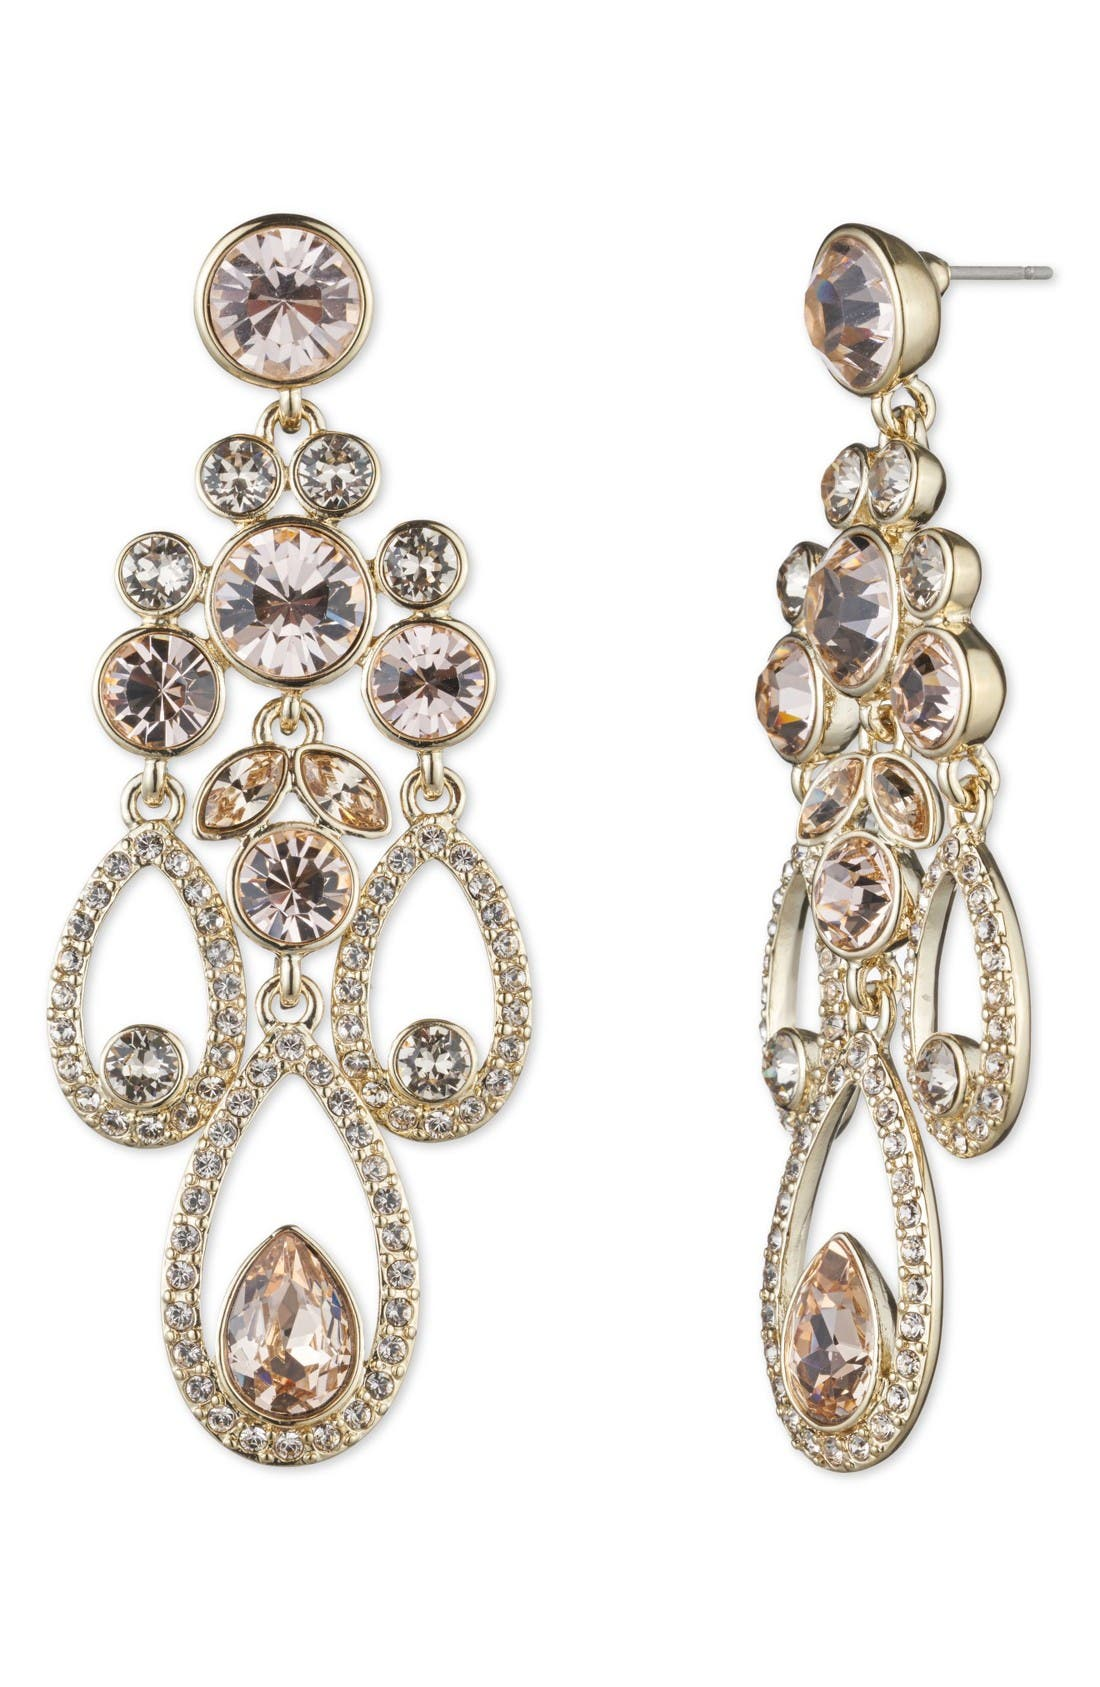 GIVENCHY Drama Chandelier Crystal Earrings